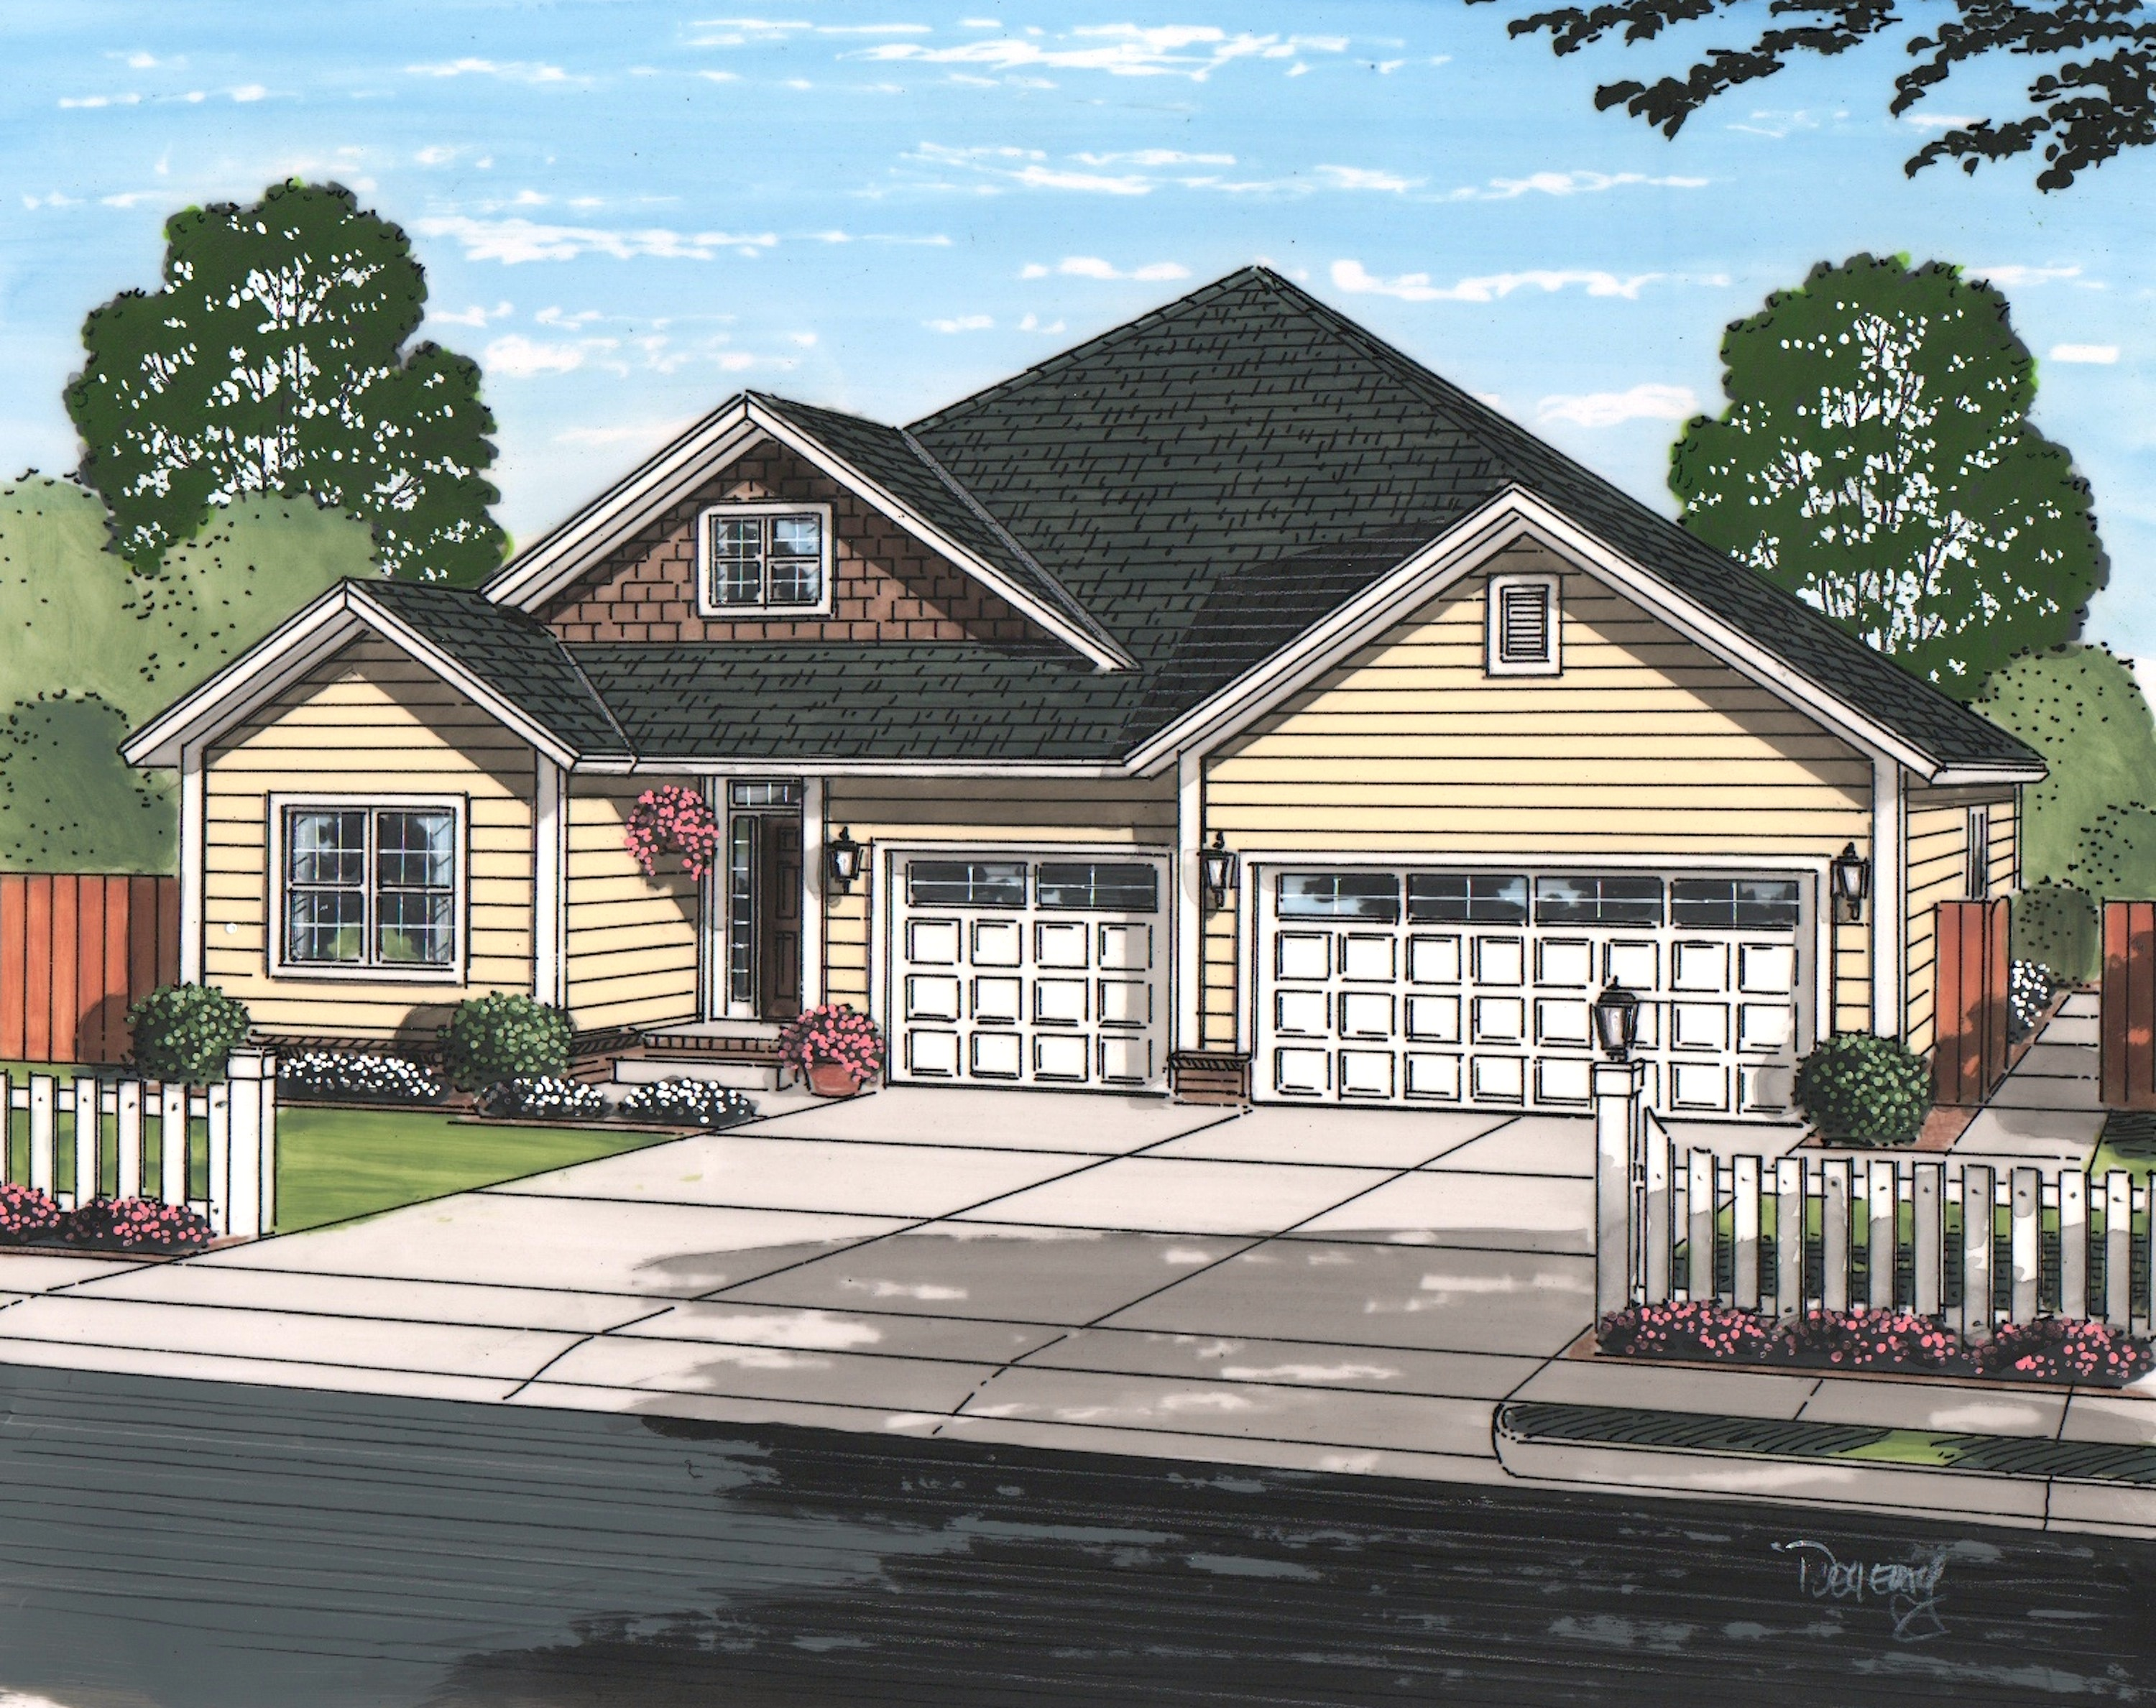 Texas style ranch house plan 178 1223 5 bedrm 1996 sq for Texas style ranch house plans